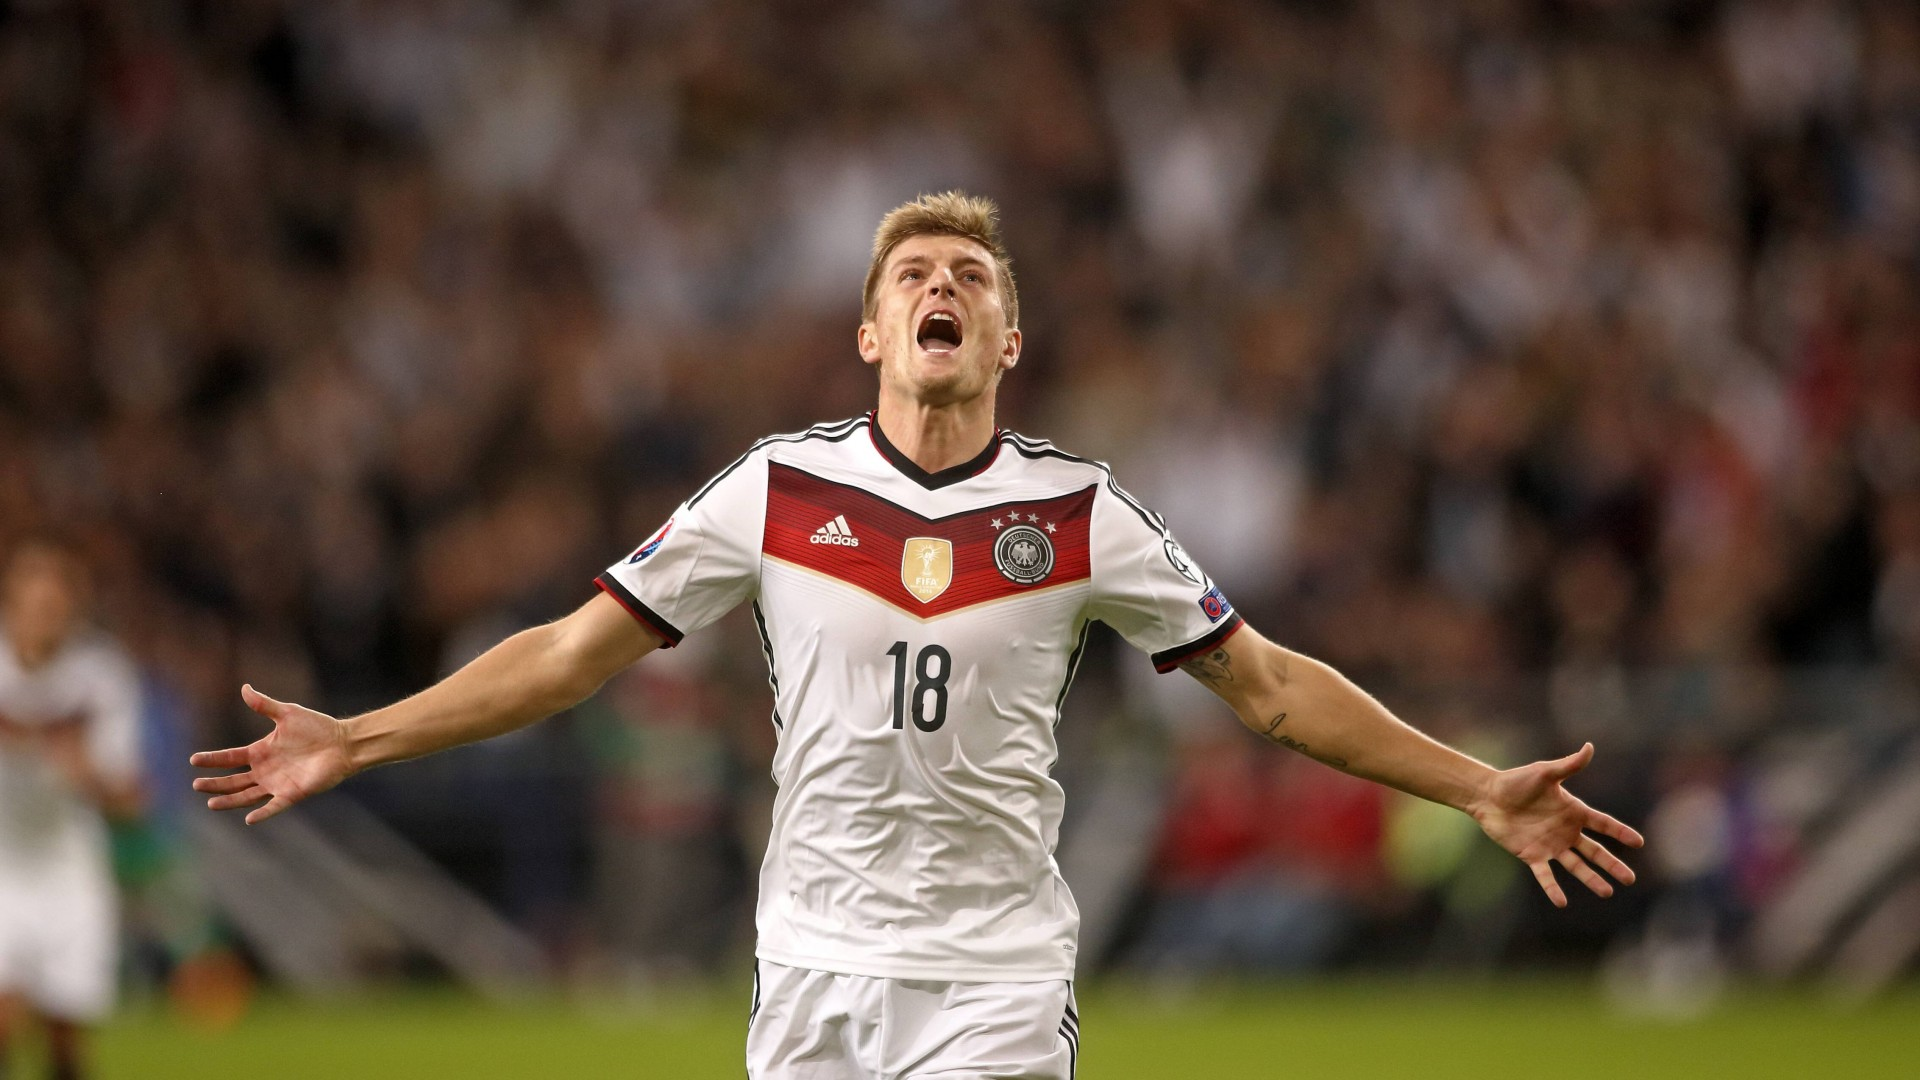 Football, Toni Kroos, soccer, The best players 2015, FIFA, Real Madrid, Midfielder (horizontal)